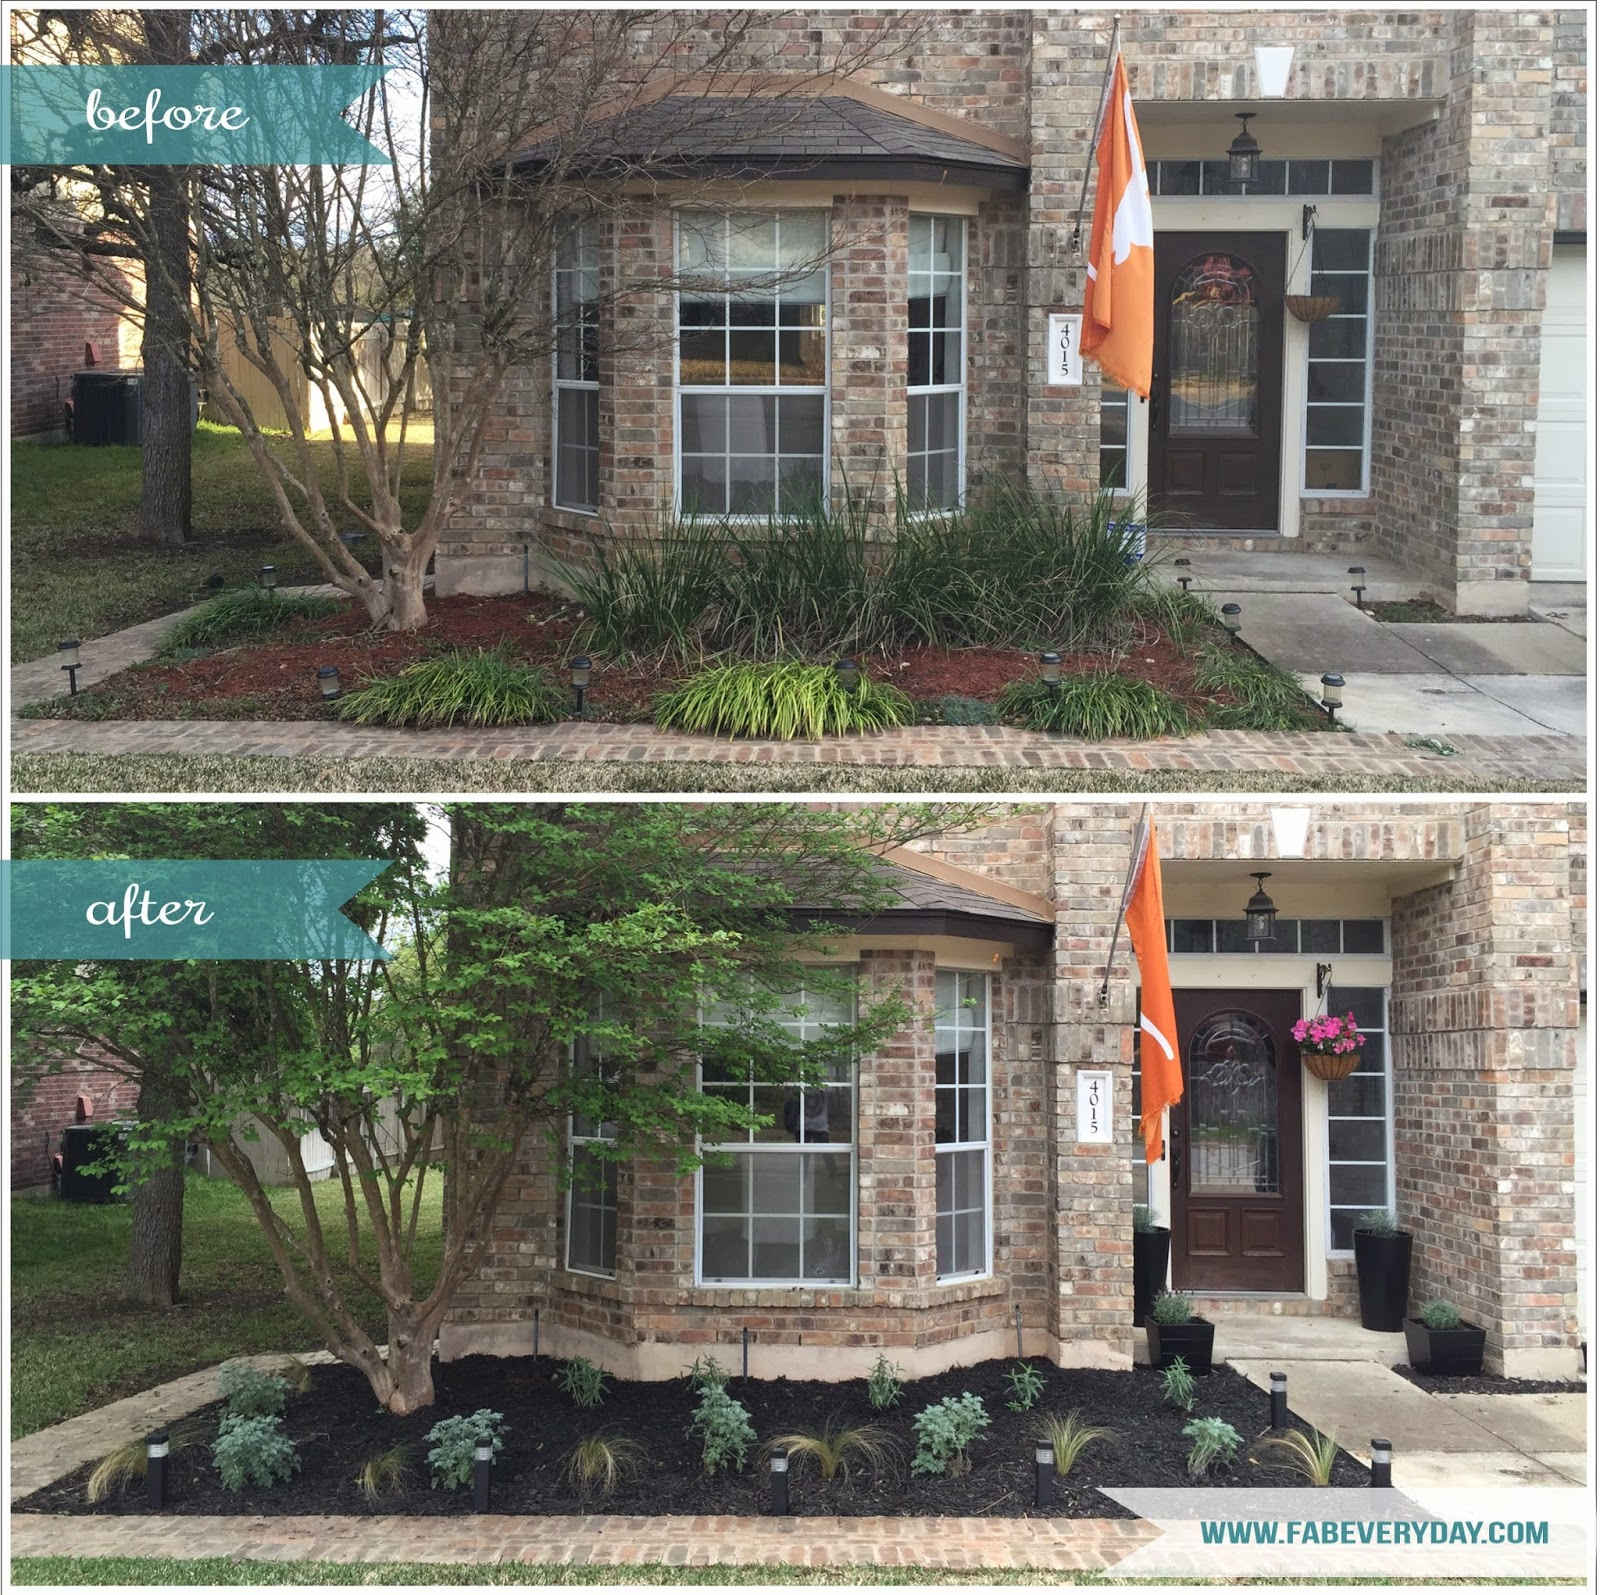 Backyard Transformation Before After: Because Everyday Life Should Be Fabulous